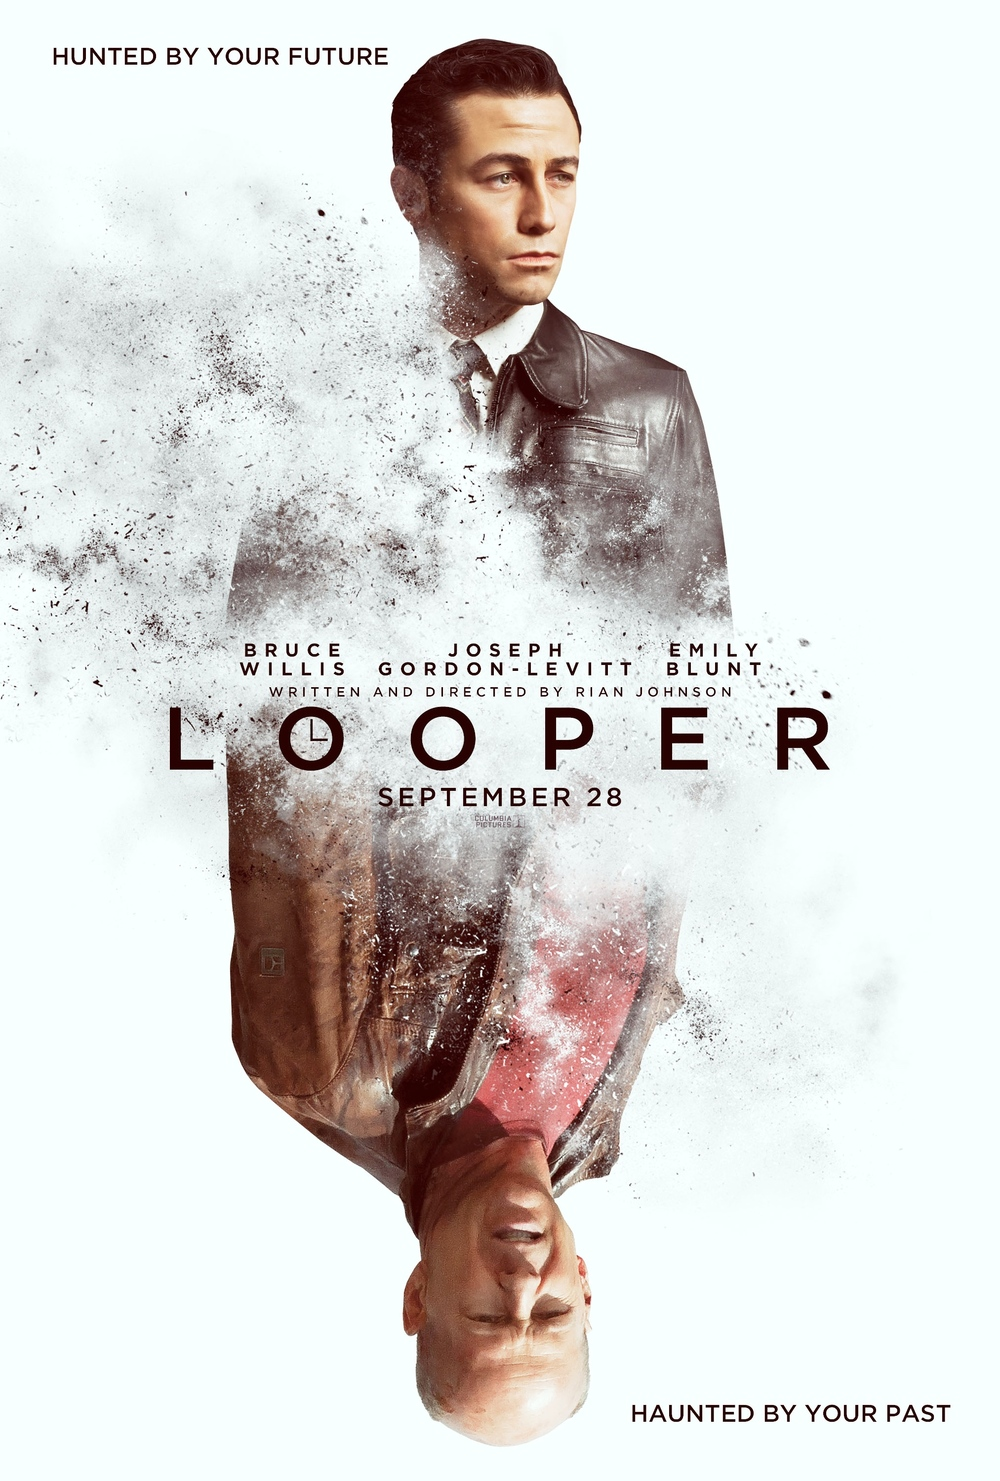 Magik*Magik teams up with composer NATHAN JOHNSON to perform and record the original film score for LOOPER,  directed by Rian Johnson and starring Bruce Willis & Joseph Gordon-Levitt.